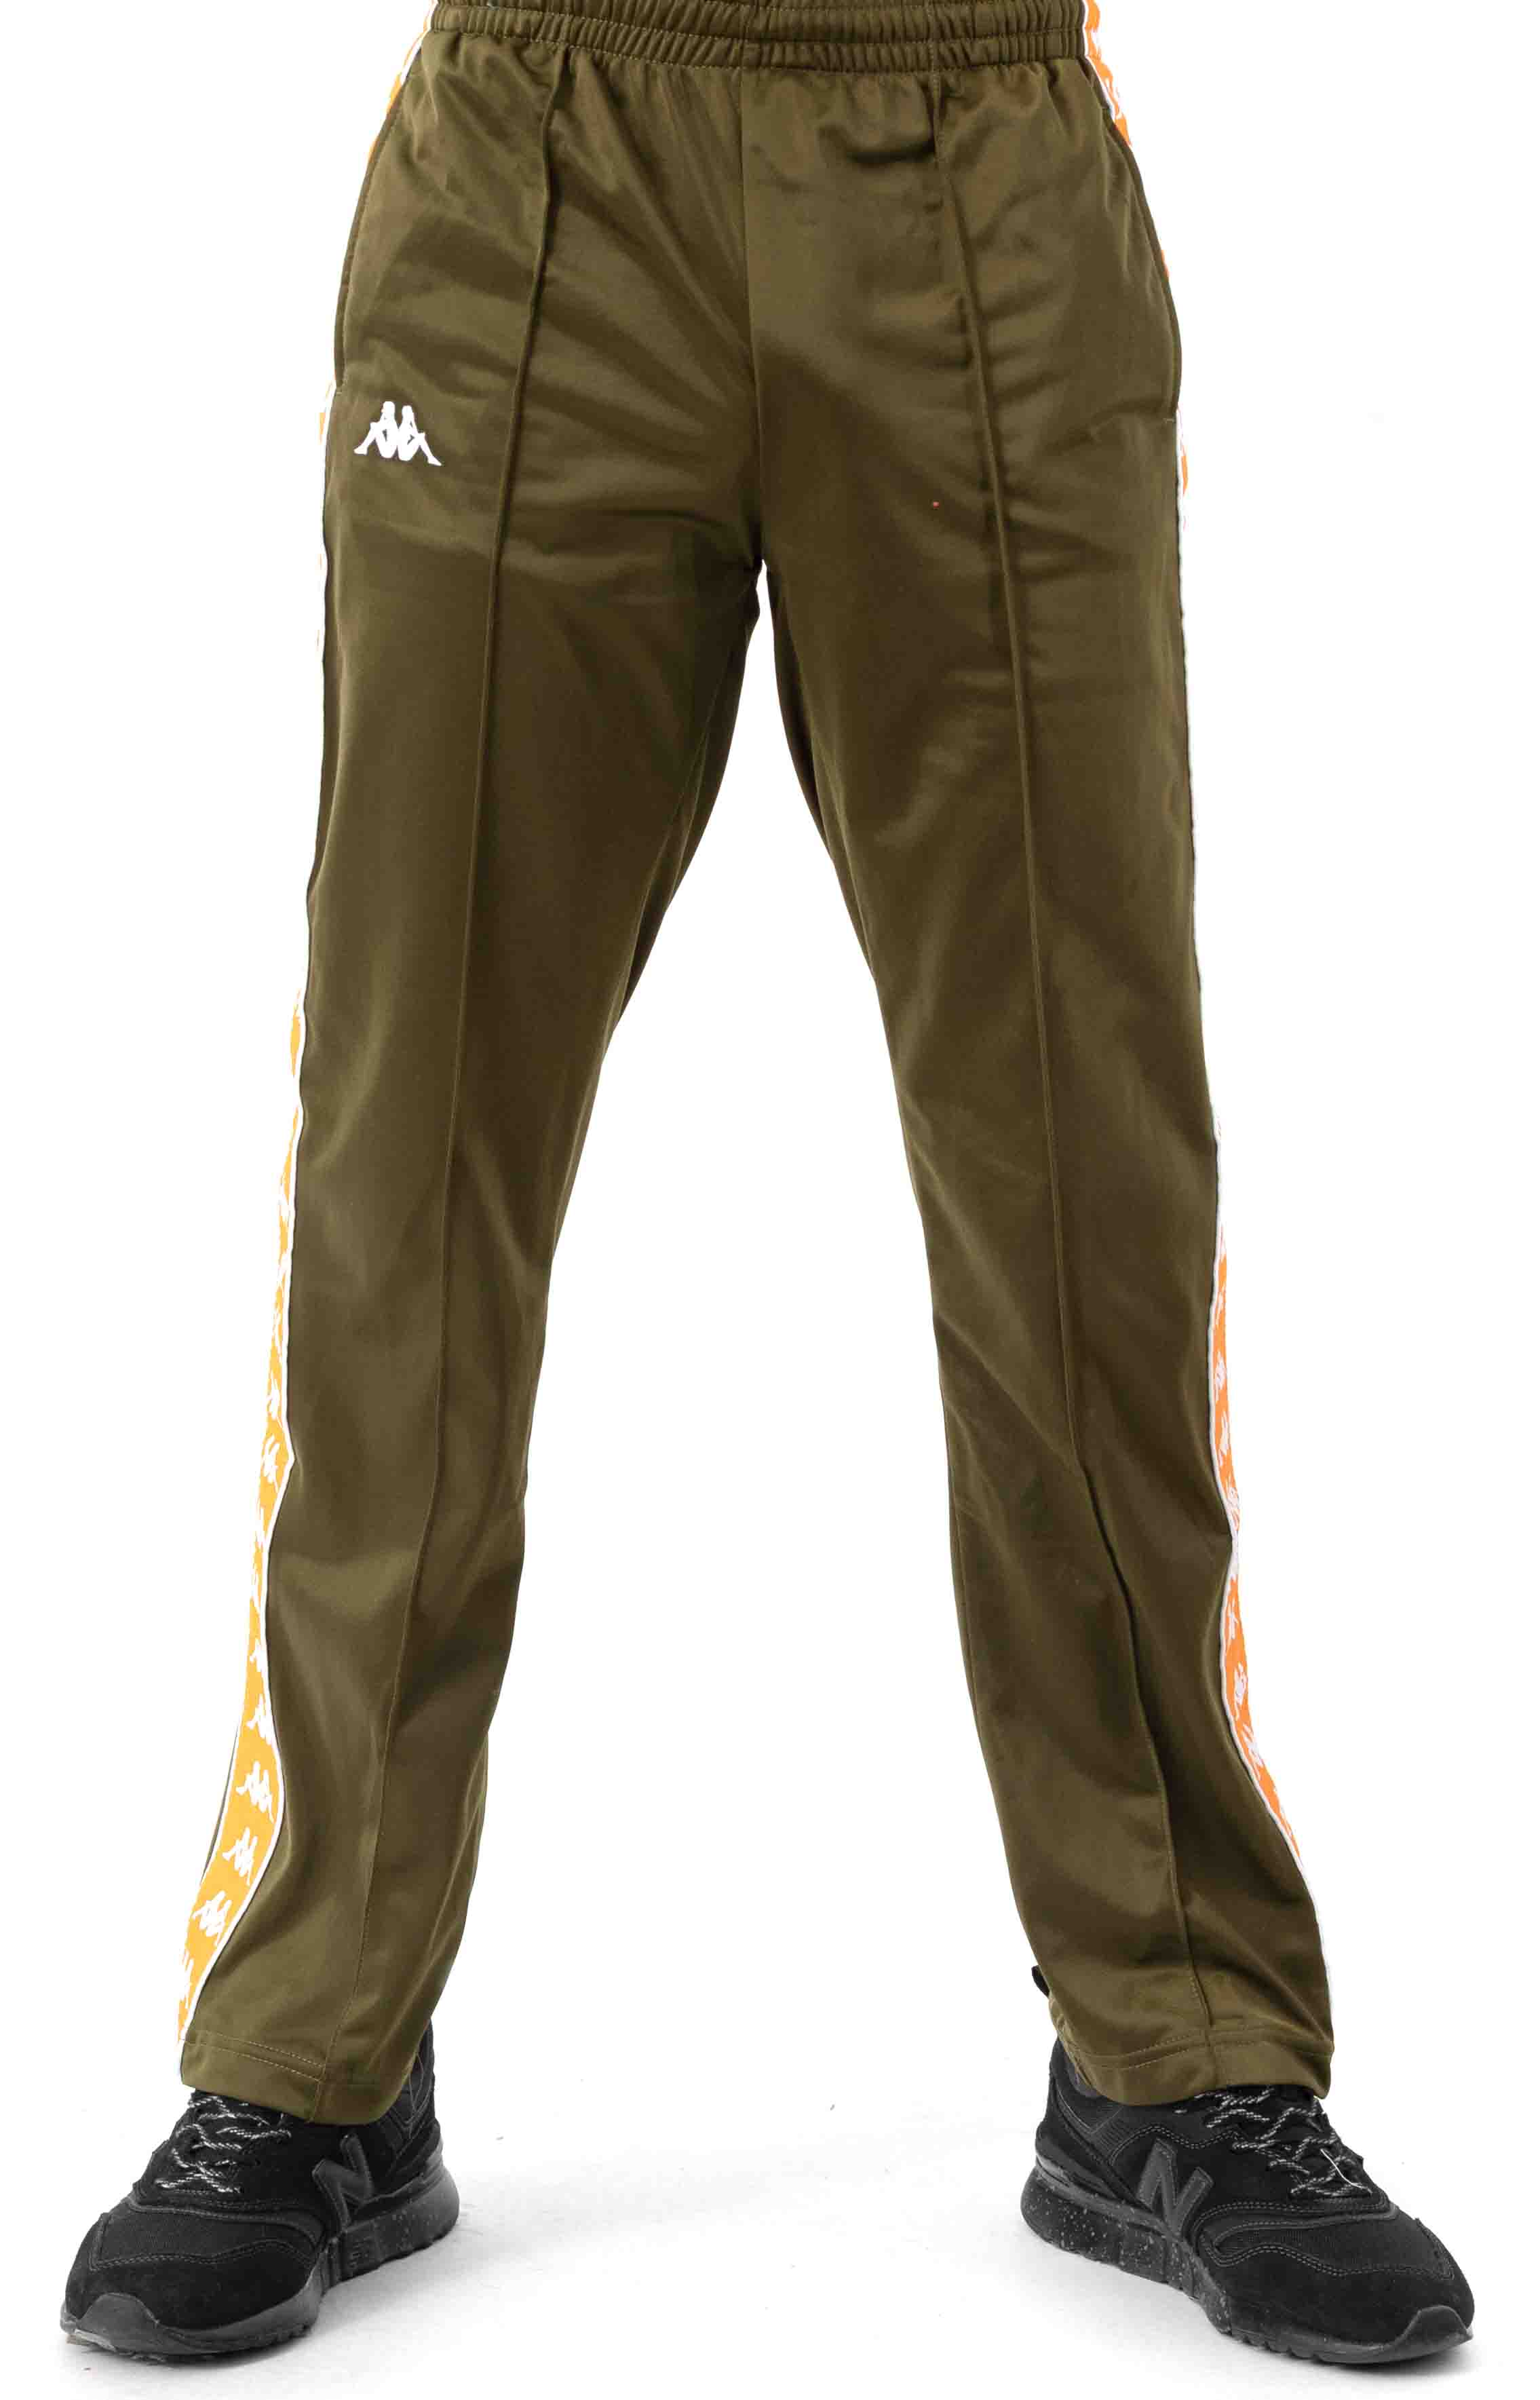 222 Banda Astoriazz Trackpant - Green Oliva/Orange 2